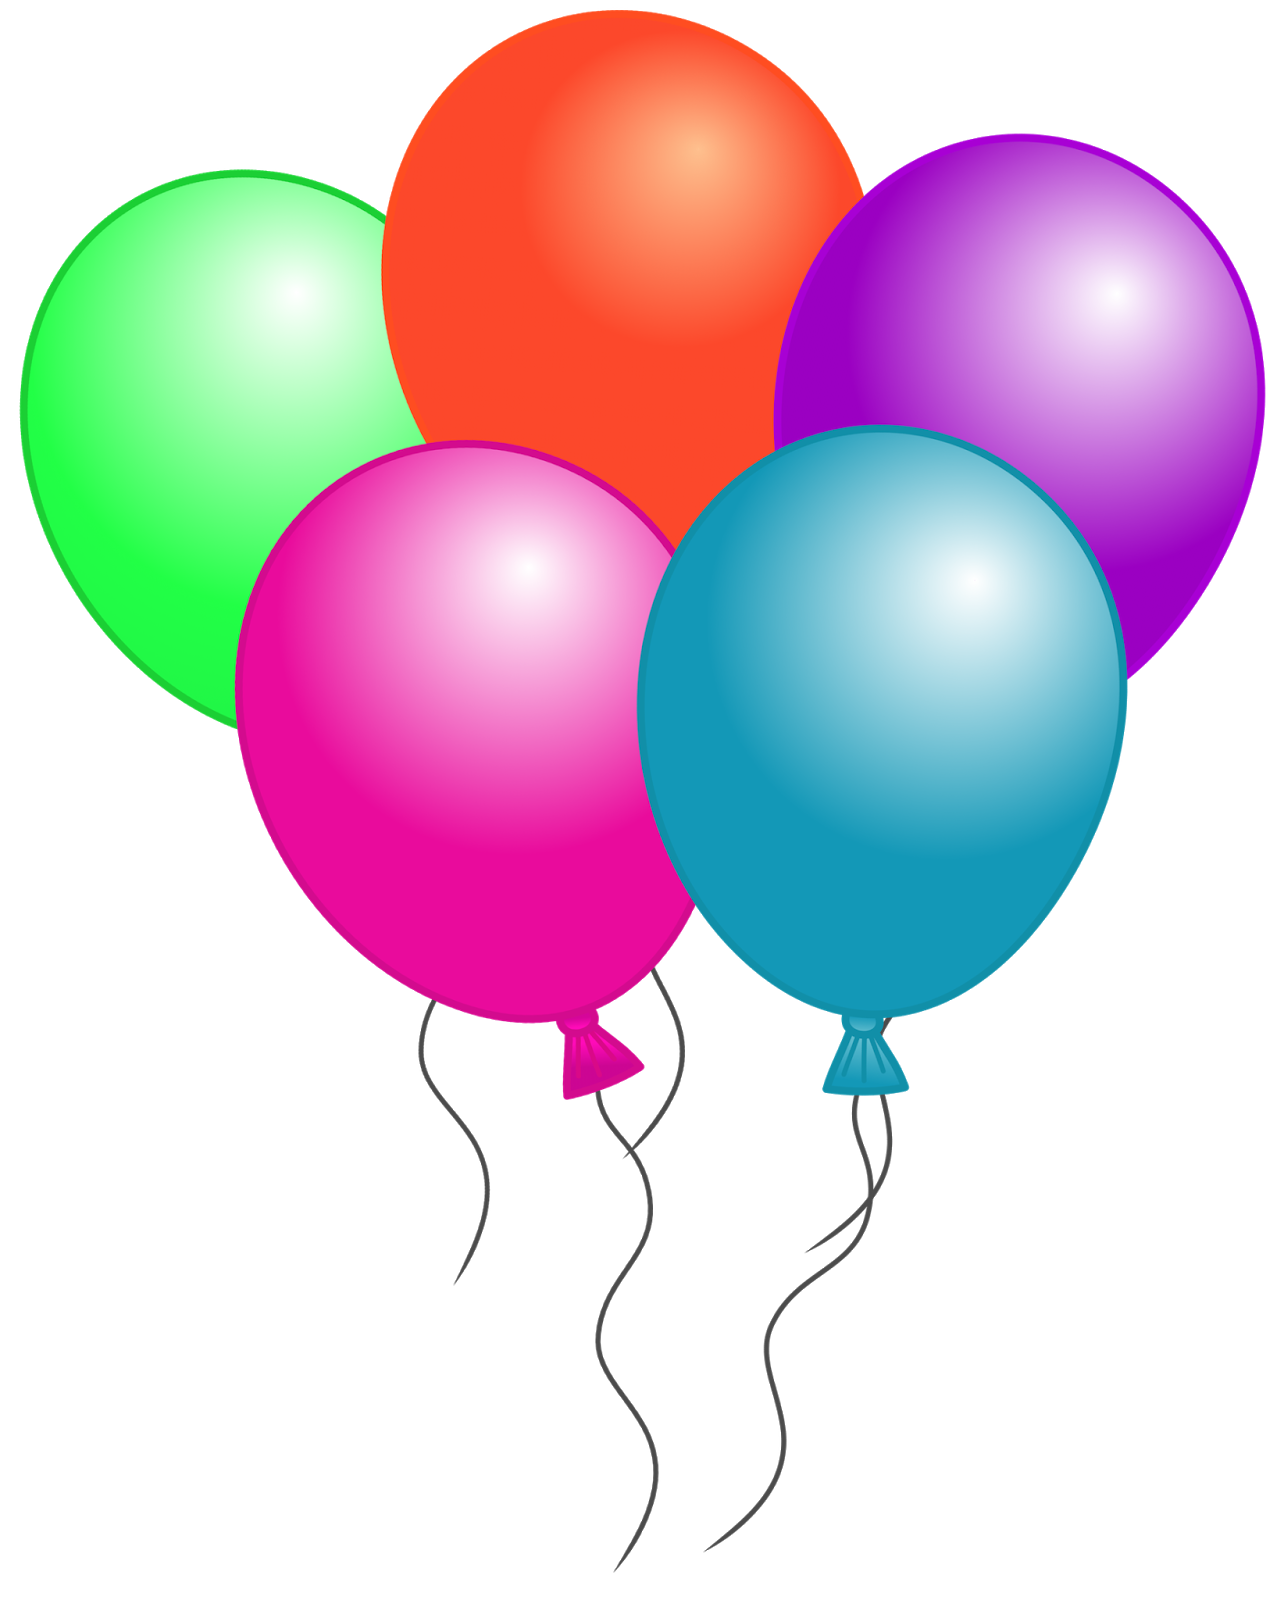 Balloon clipart number.